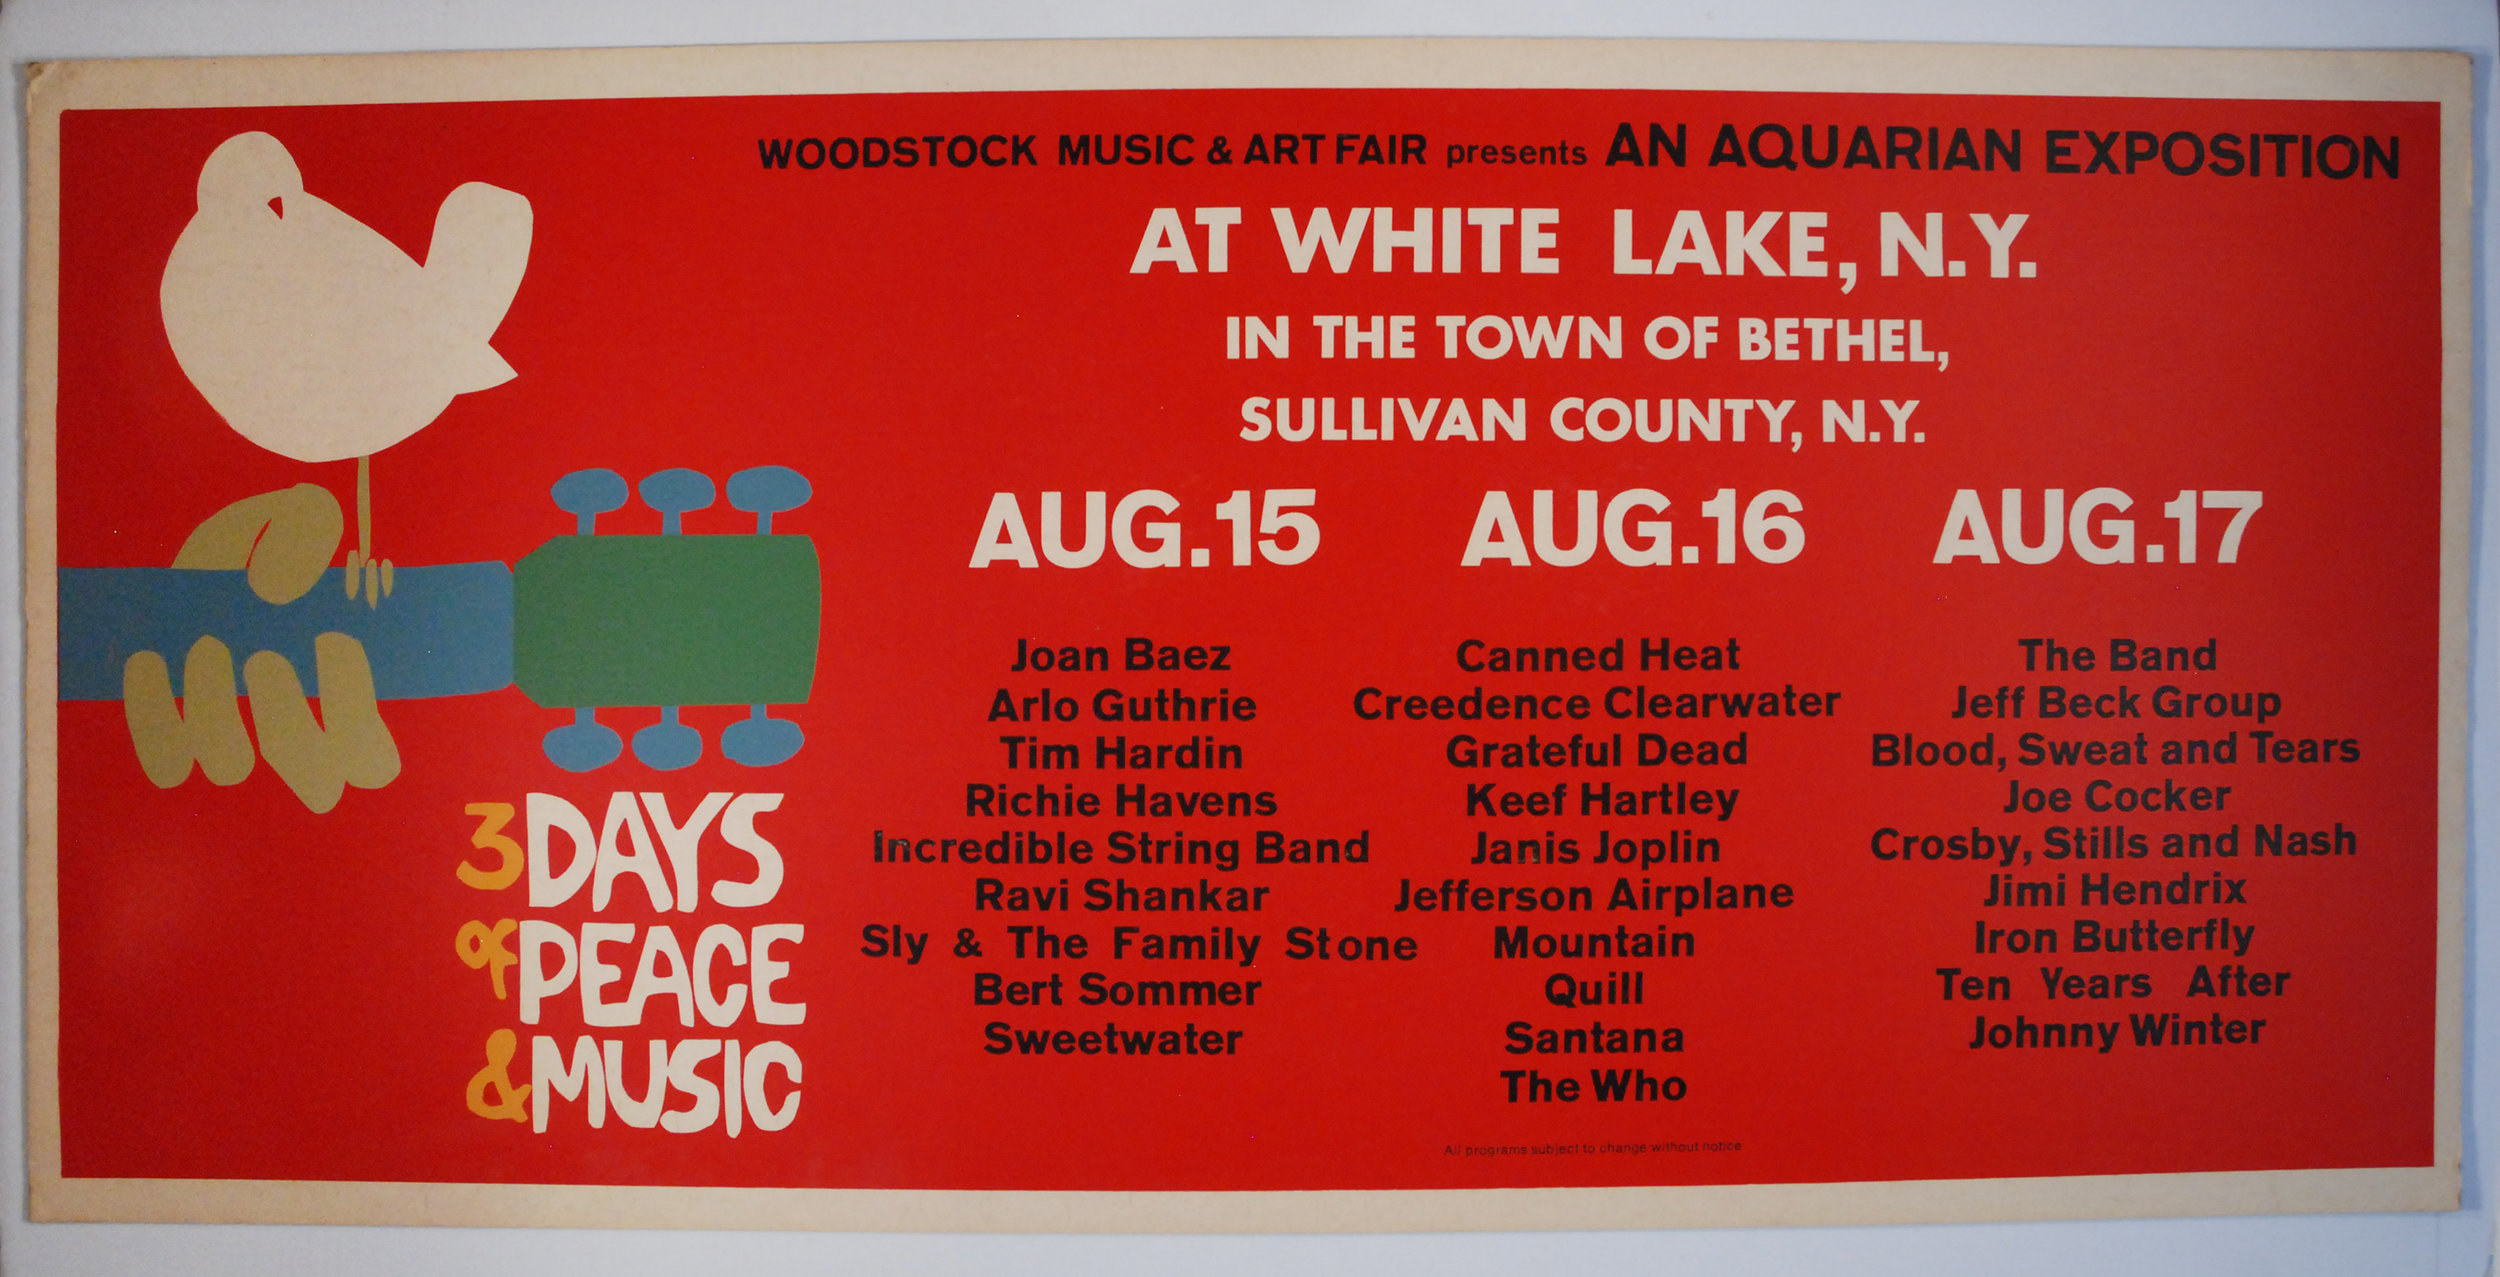 Authentic Woodstock posters are highly coveted and enjoy demand from people OUTSIDE our hobby, as well as within. The poster above is extremely rare and was created for display on the side of a bus. Many experts expect values to increase dramatically starting next year.